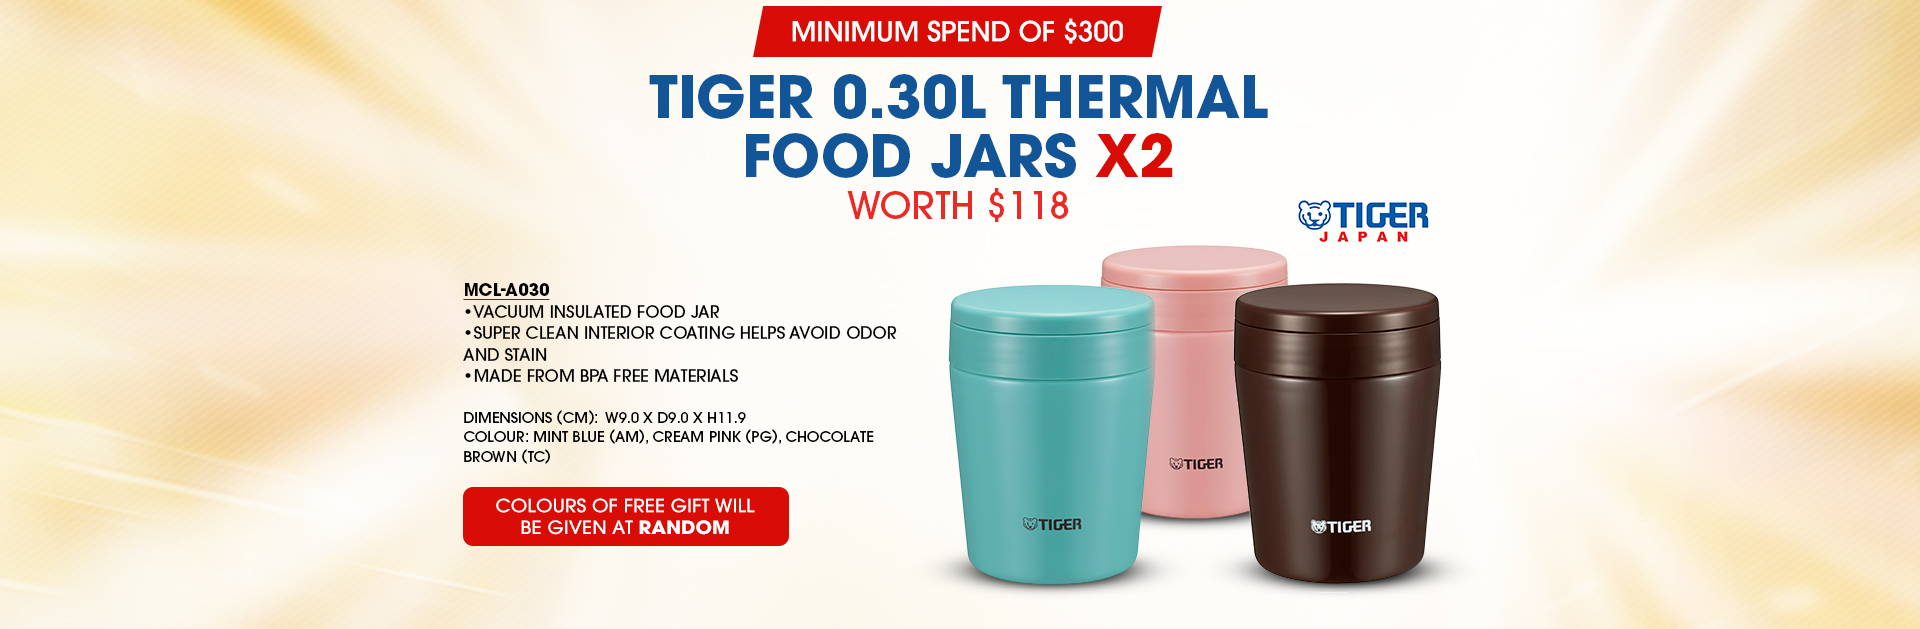 Free Tiger Thermal Food Jars